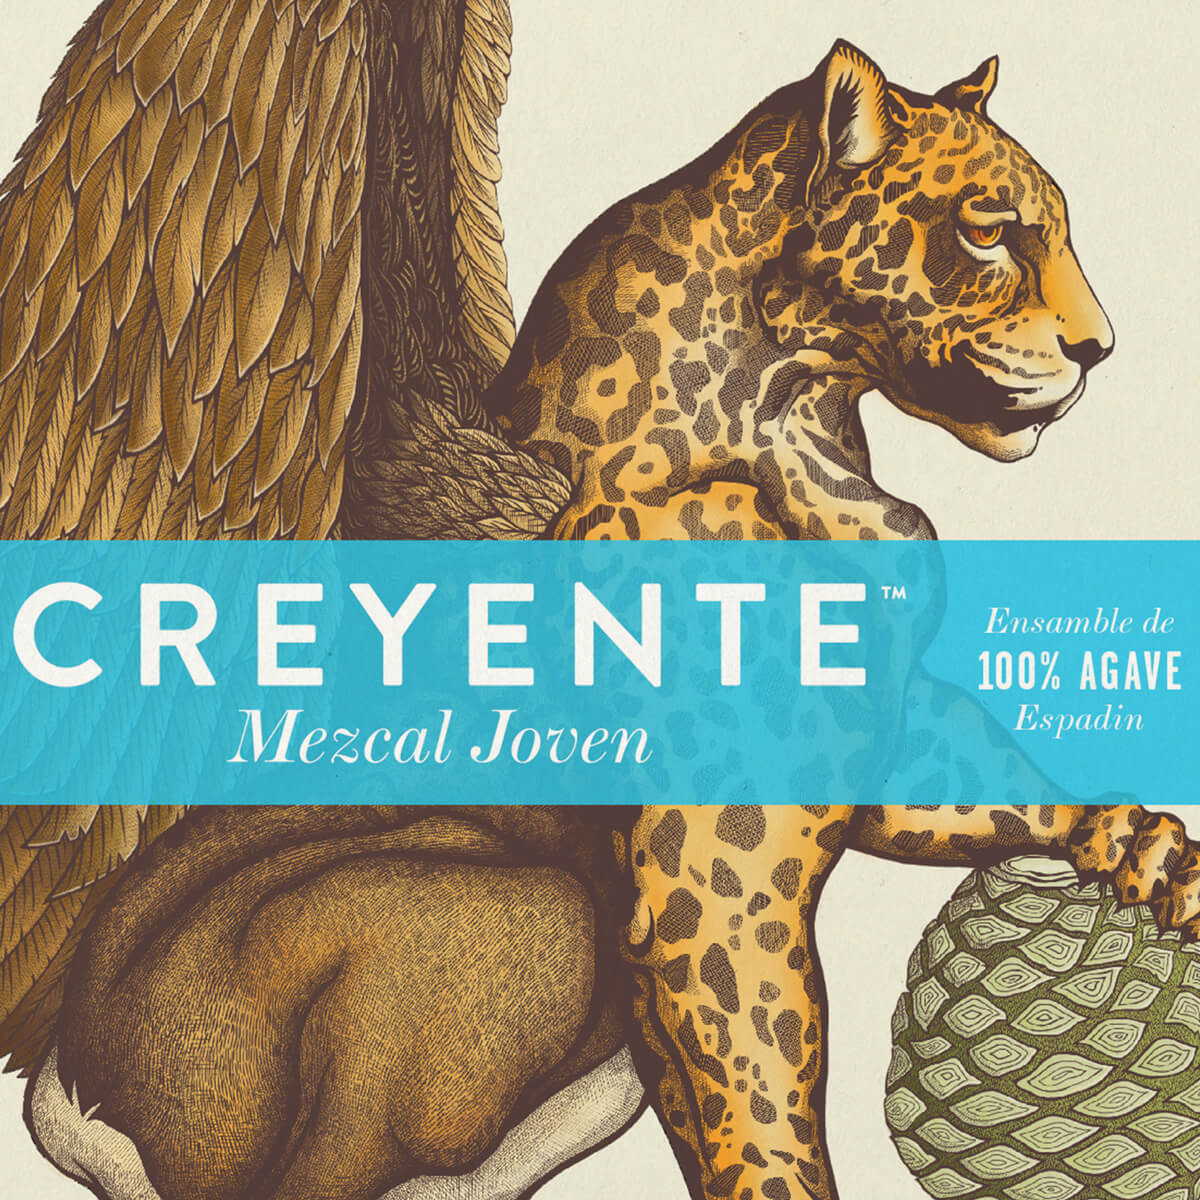 Creyente Mezcal Packaging Hero Image